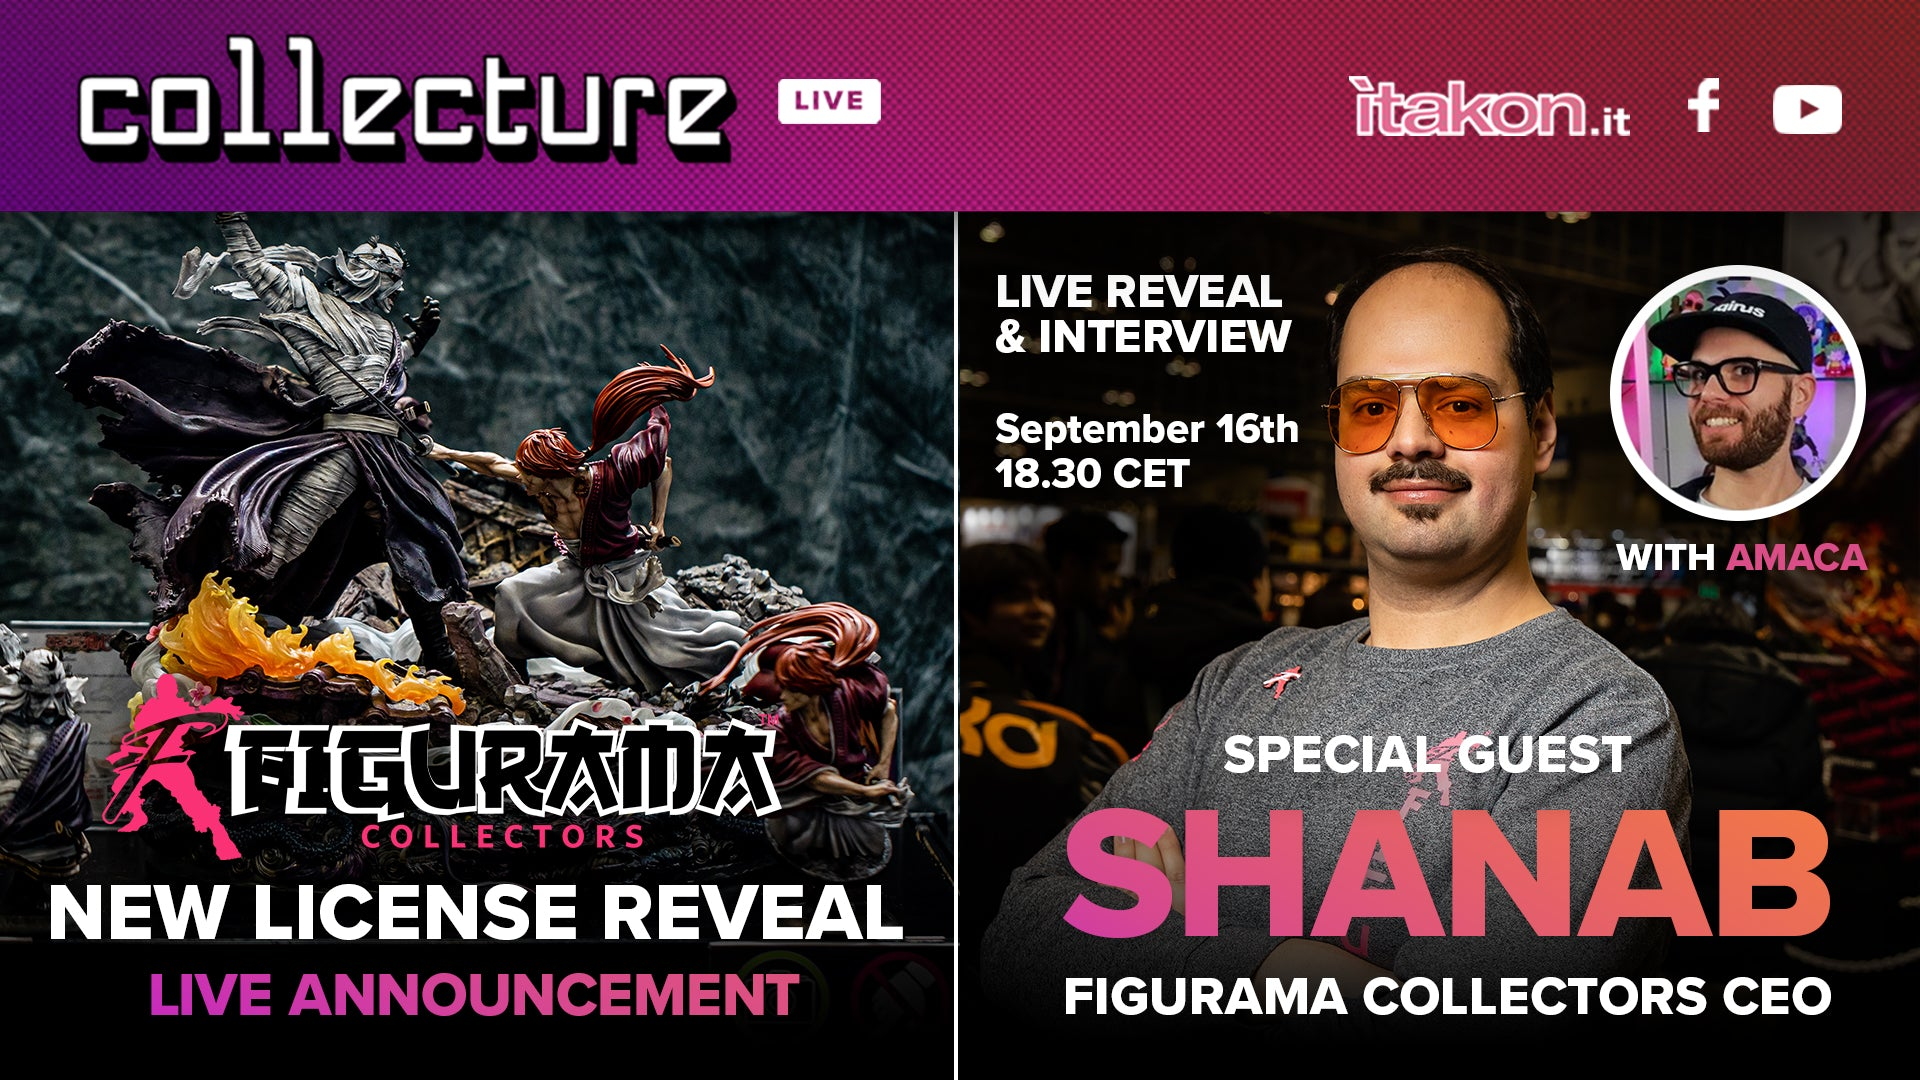 FIGURAMA CEO MR. SHANAB & NEW LICENSE REVEAL to be featured on ITAKON COLLECTURE LIVE